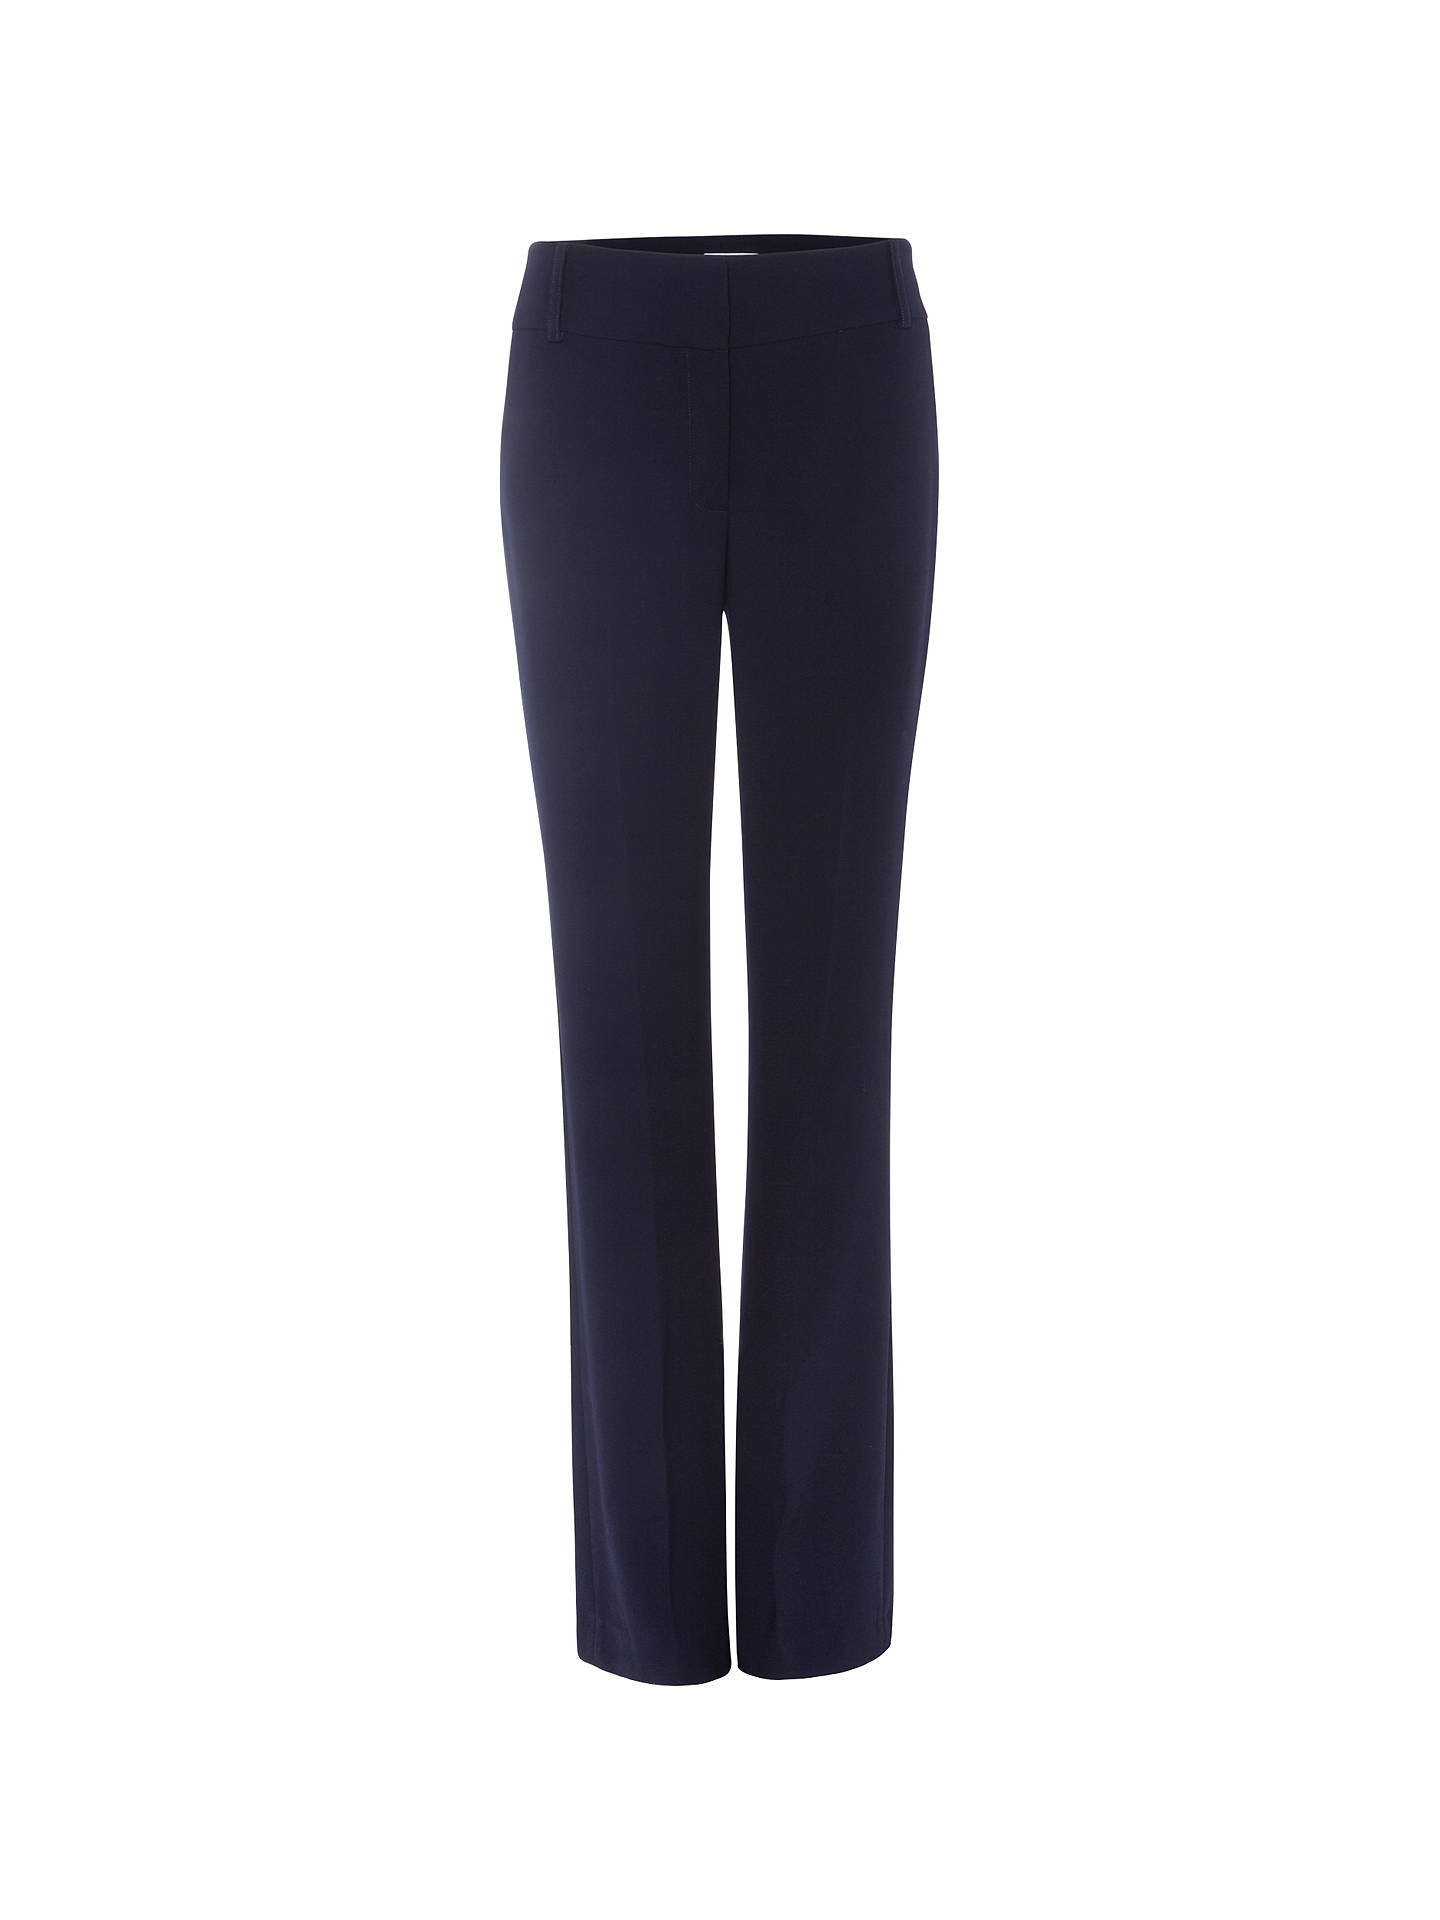 BuyDamsel in a Dress City Suit Trousers, Navy, 8 Online at johnlewis.com